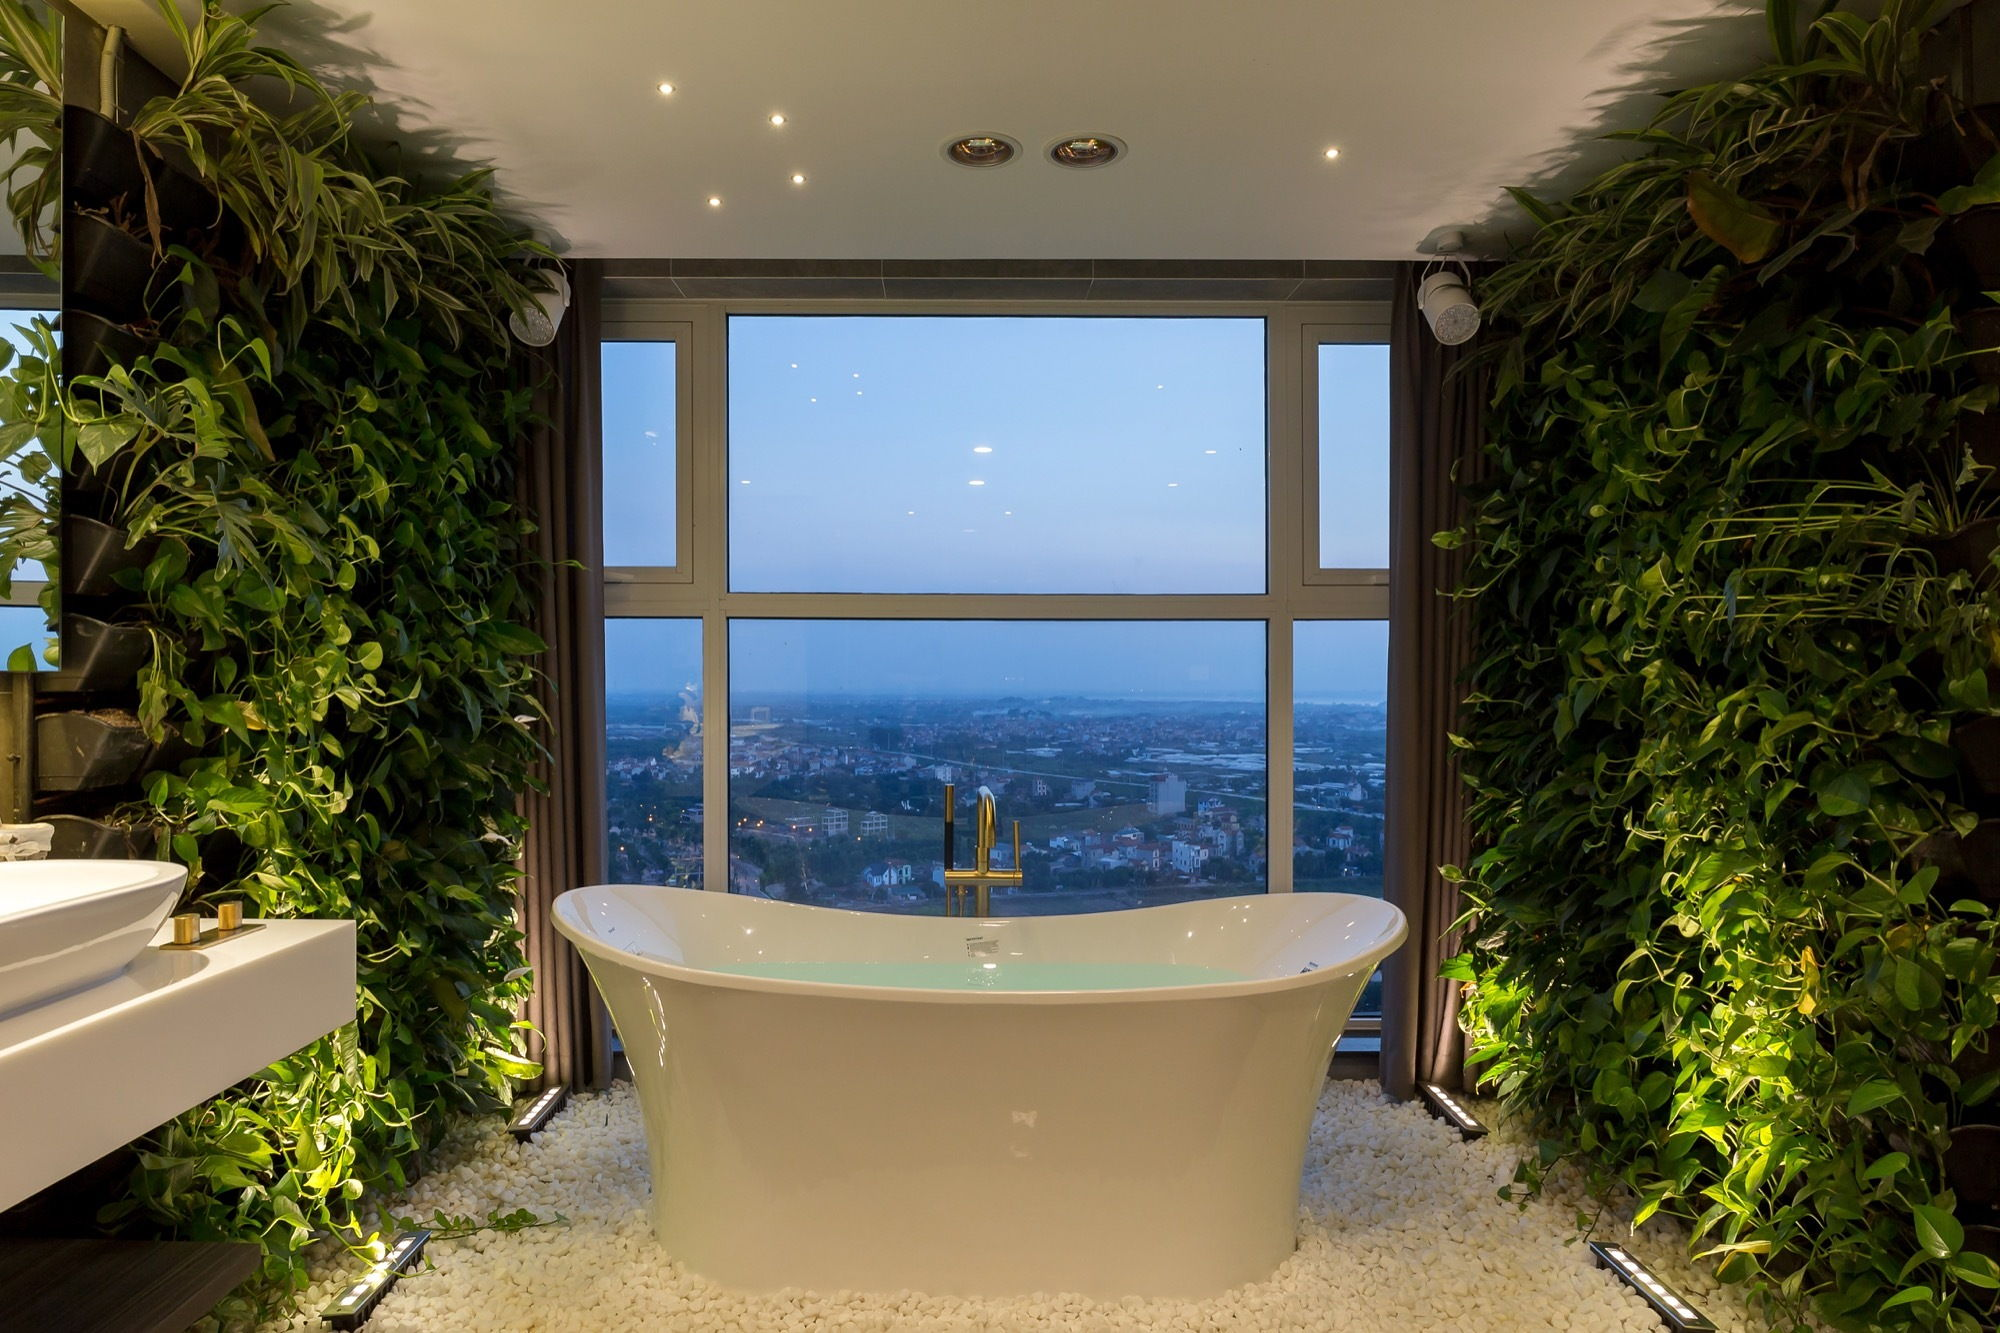 Ecopark: The Penthouse With Garden In Vietnam